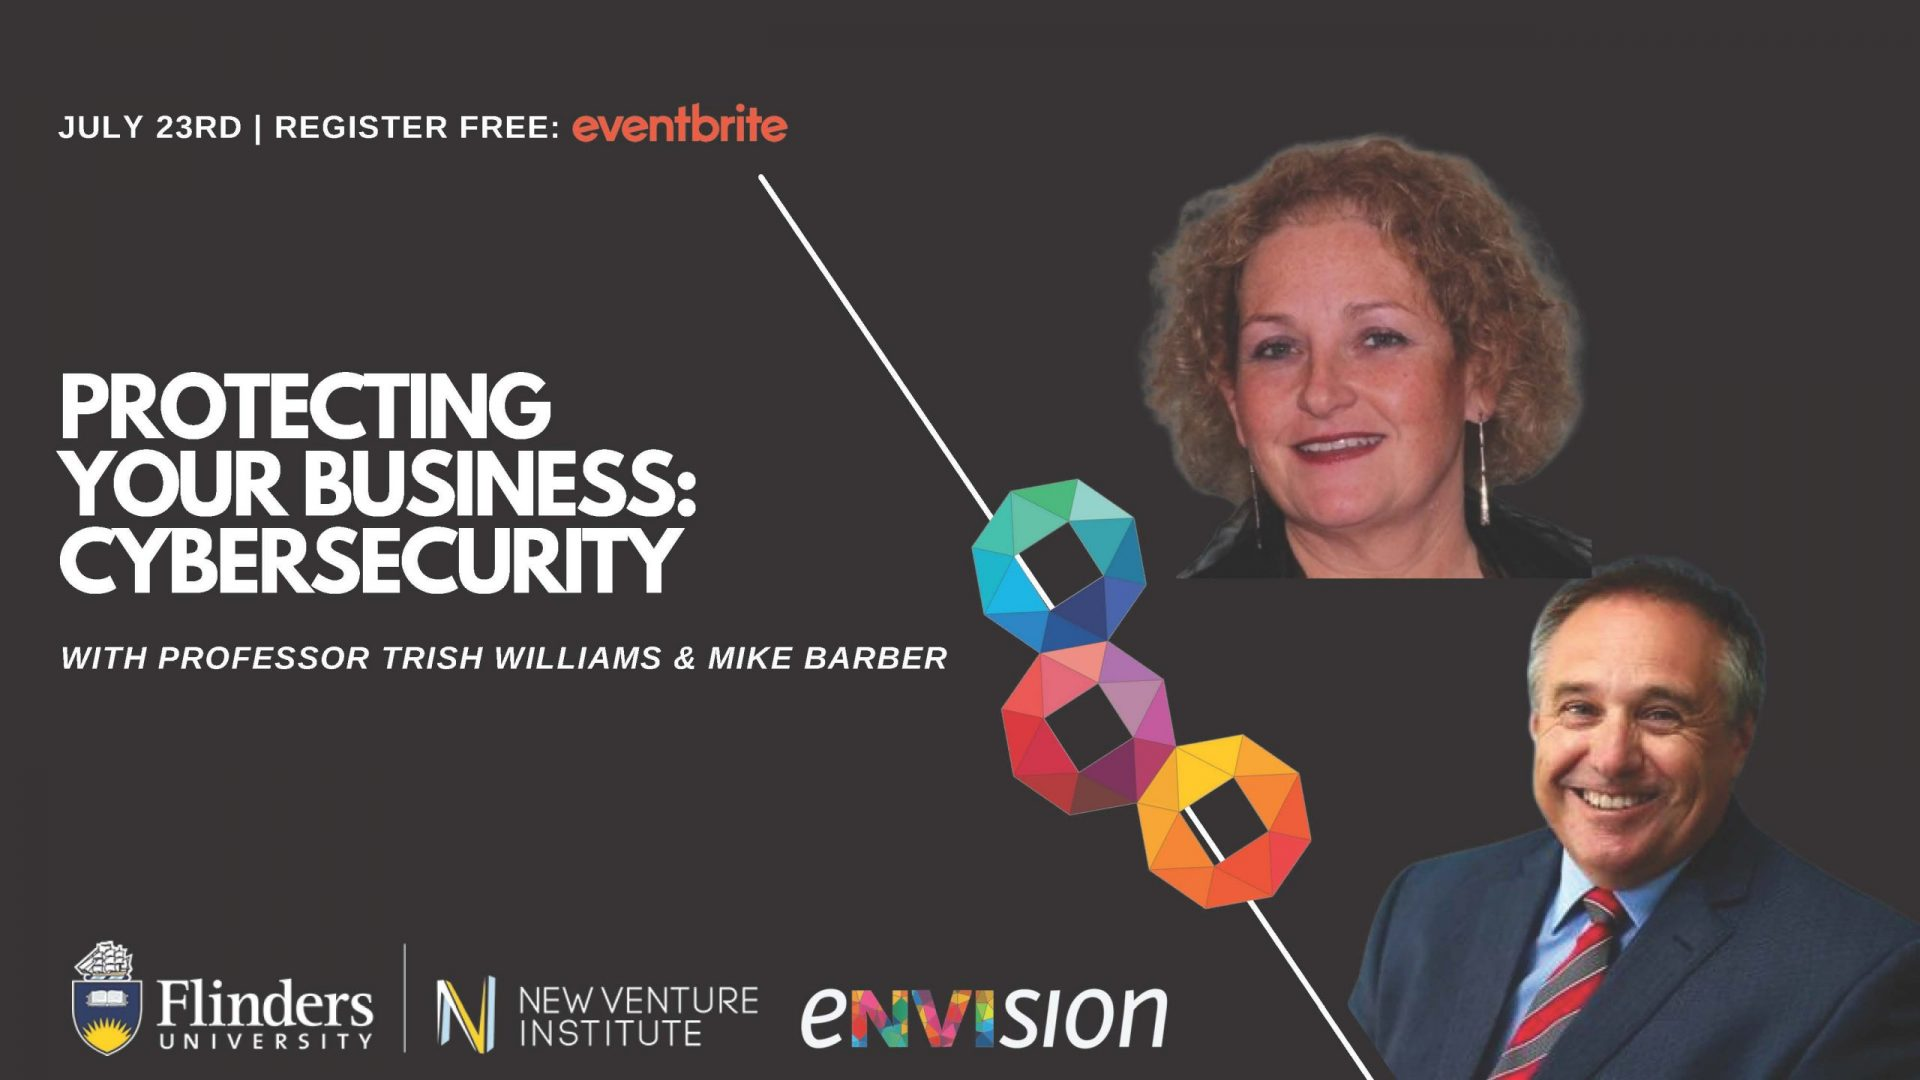 eNVIsion Event - Protecting your business - cybersecurity PRESENTATION SLIDE